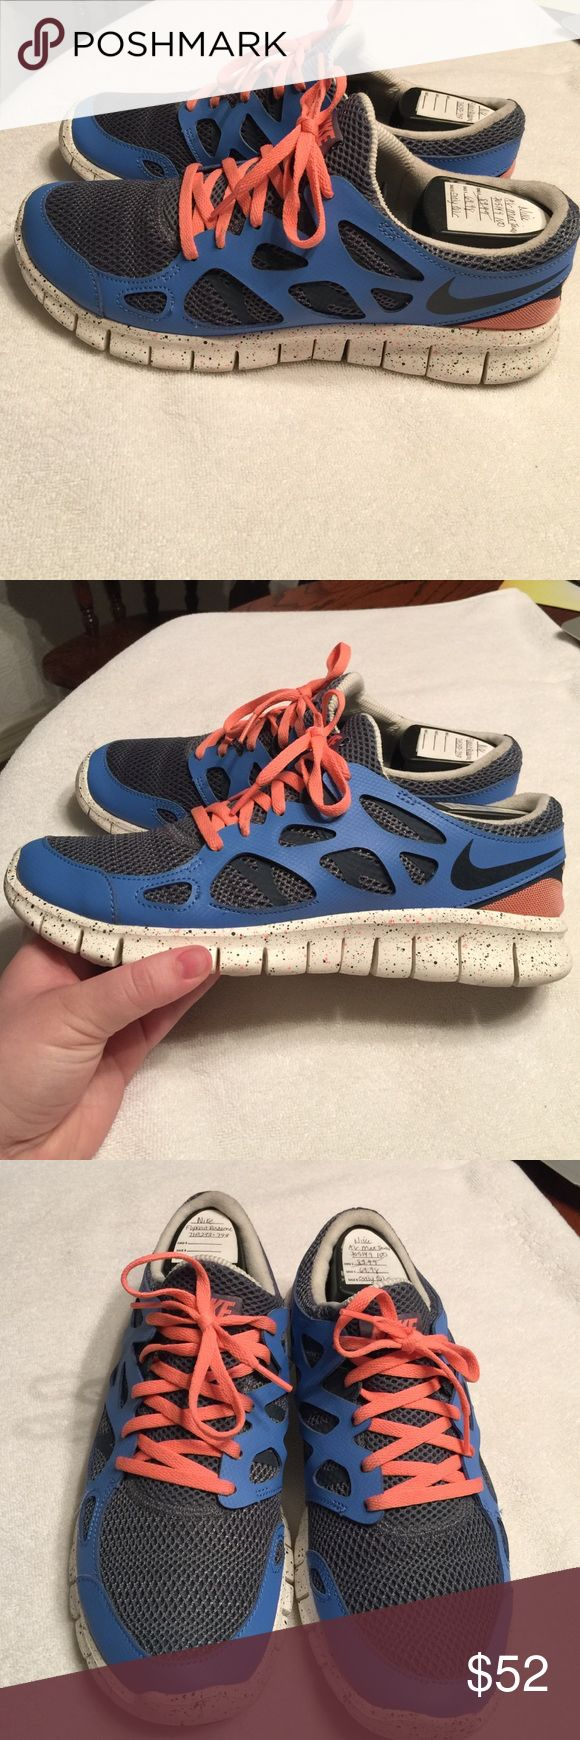 Women's Nike Free Run 2 Shoes are in great condition, worn 3 times. Sole